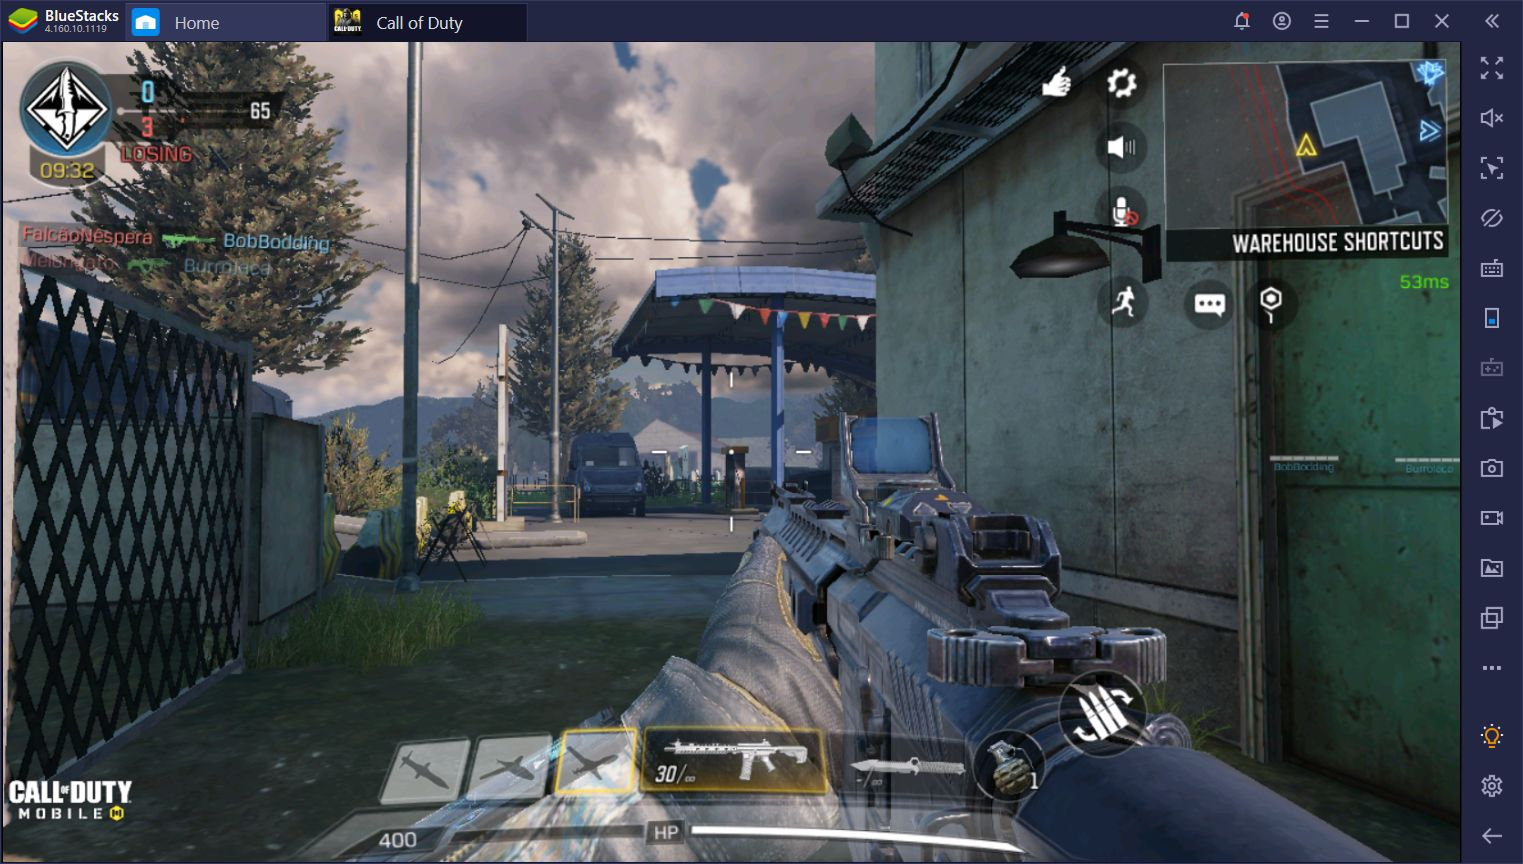 Call of Duty: Mobile on PC Season 3 Update – Here's What's New